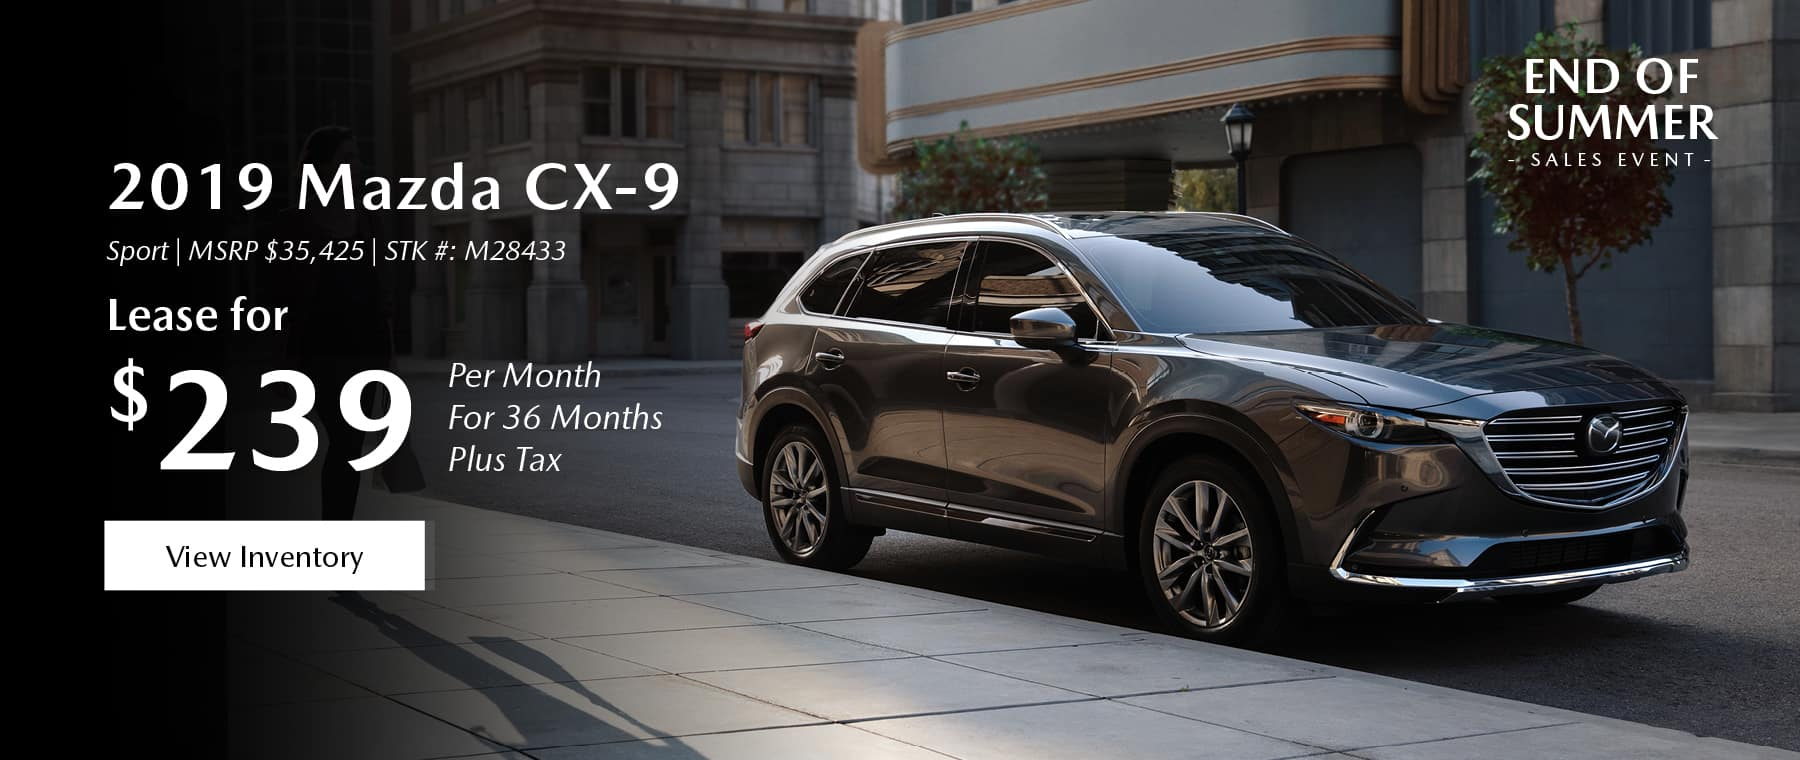 Lease the 2019 Mazda CX-9 for $239 per month, plus tax.